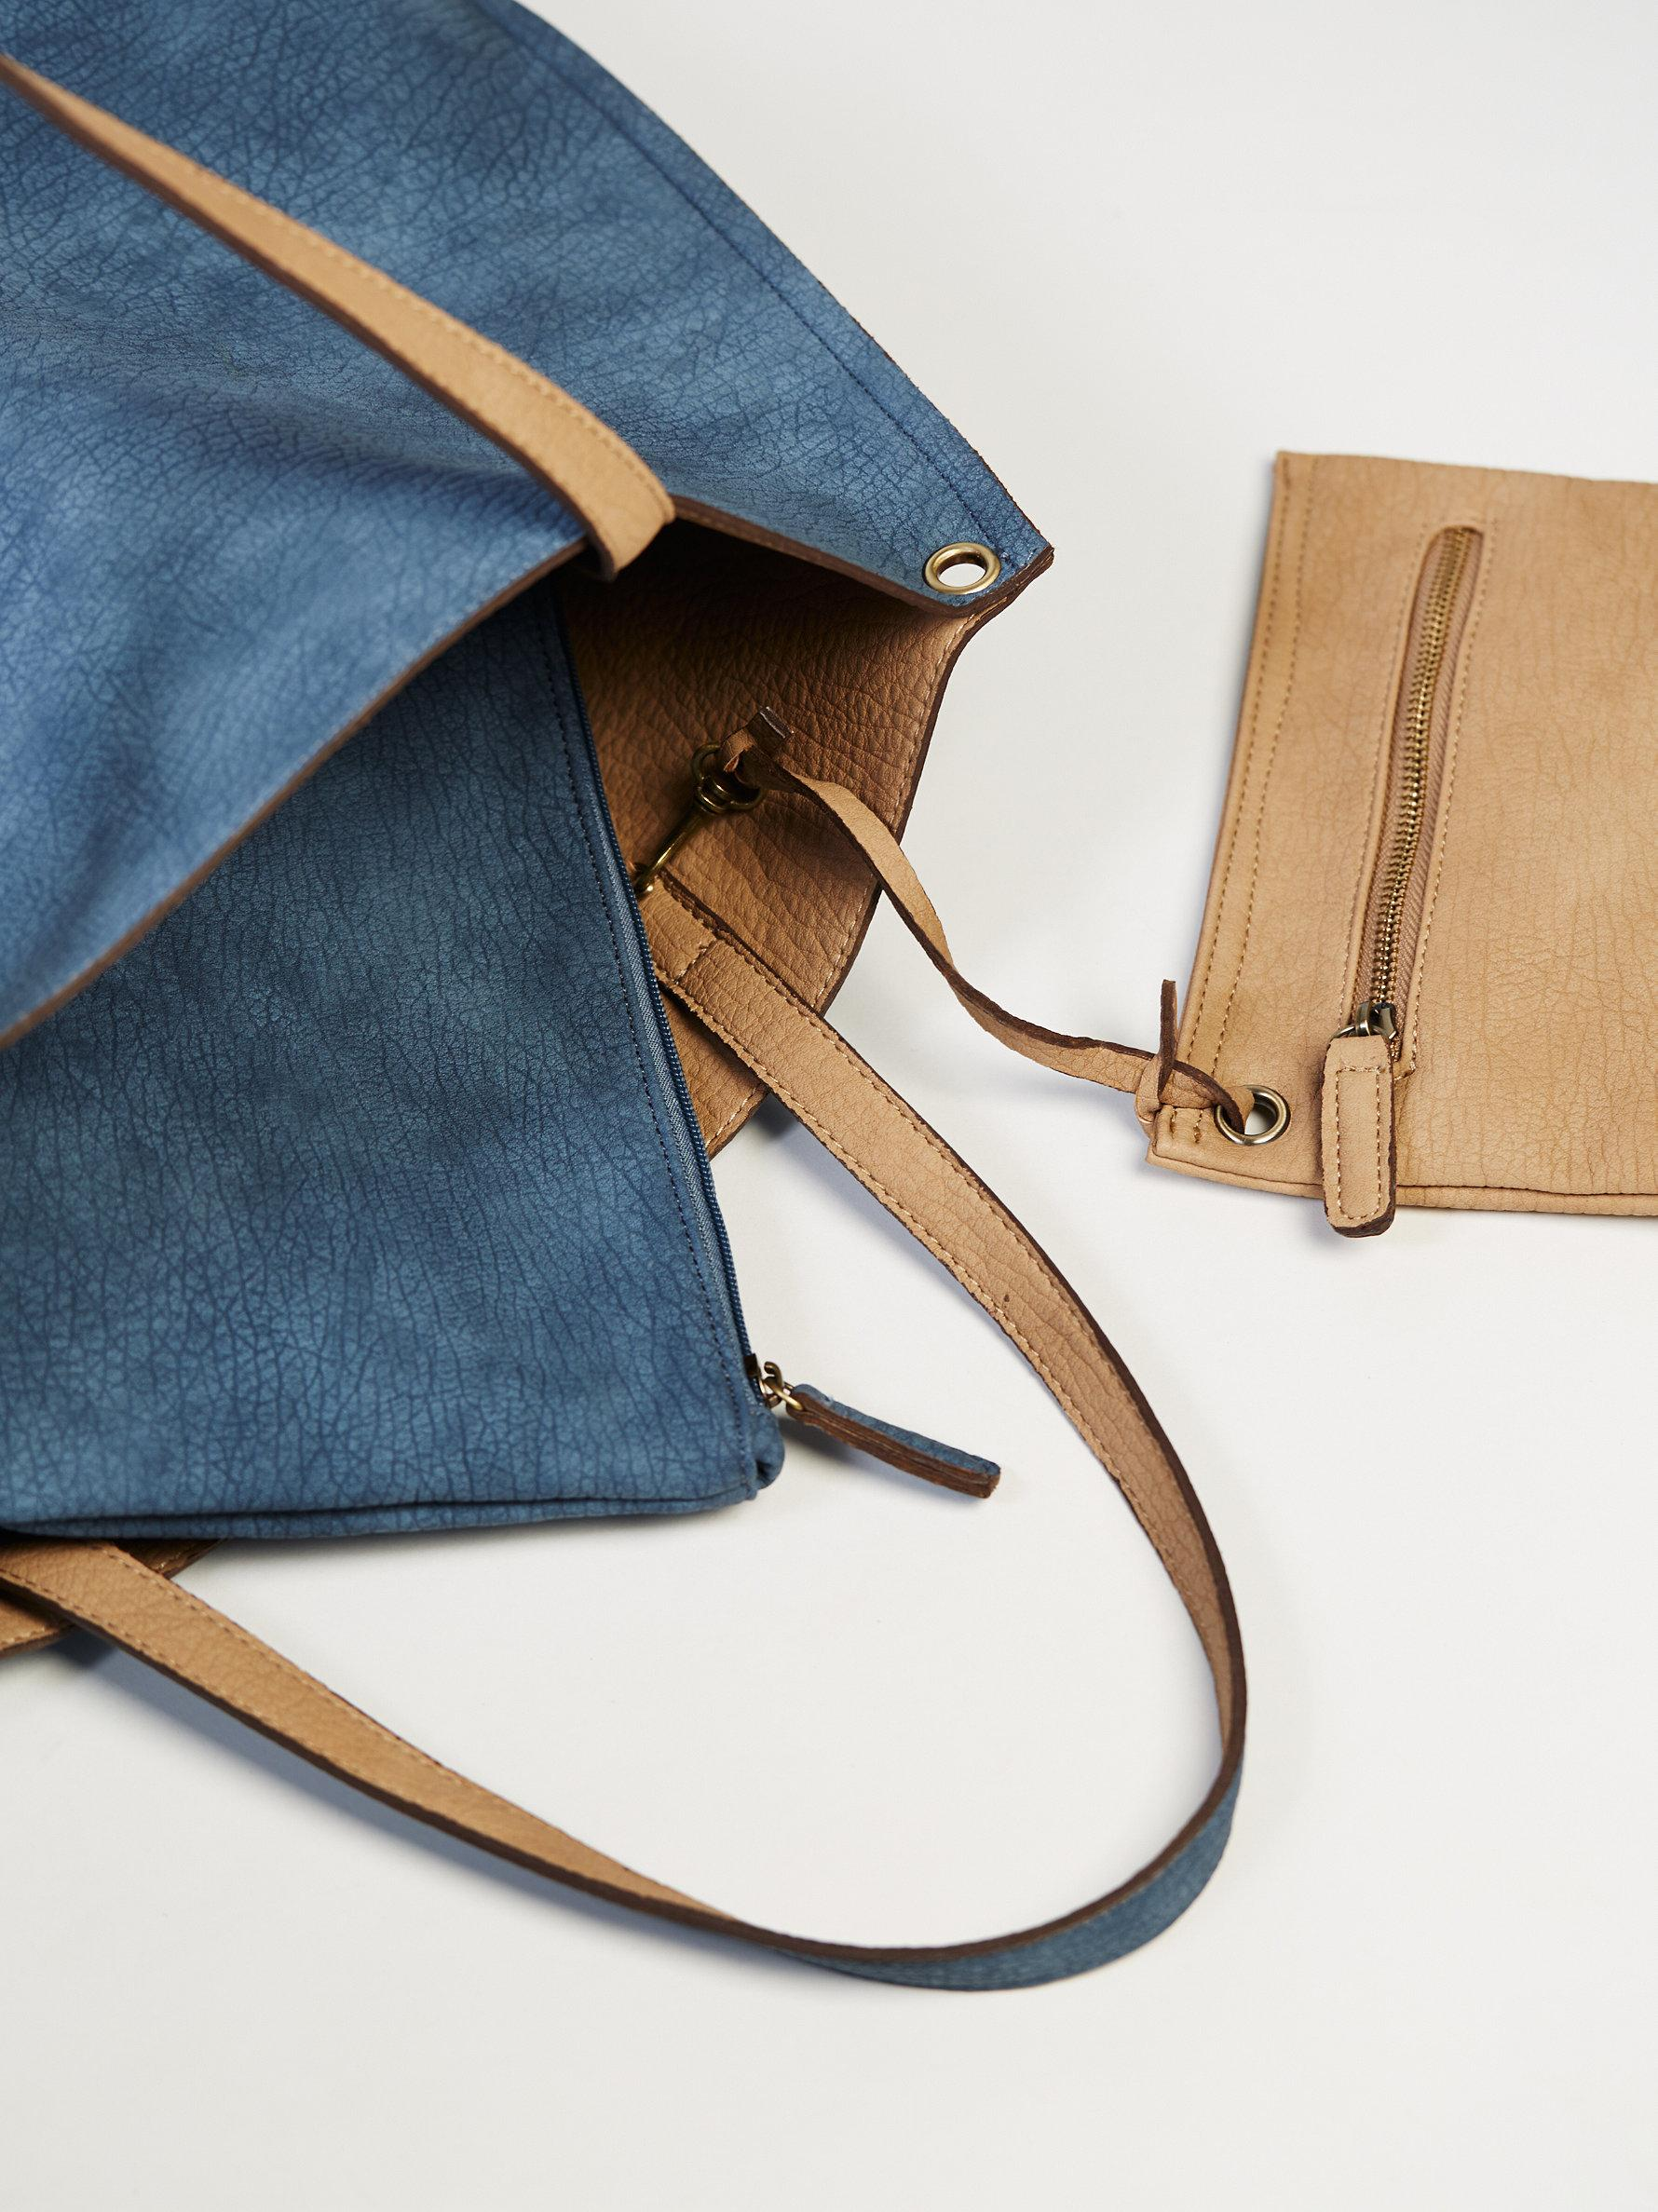 Free People Leather Slouchy Vegan Tote in Washed Blue / Natural (Blue)